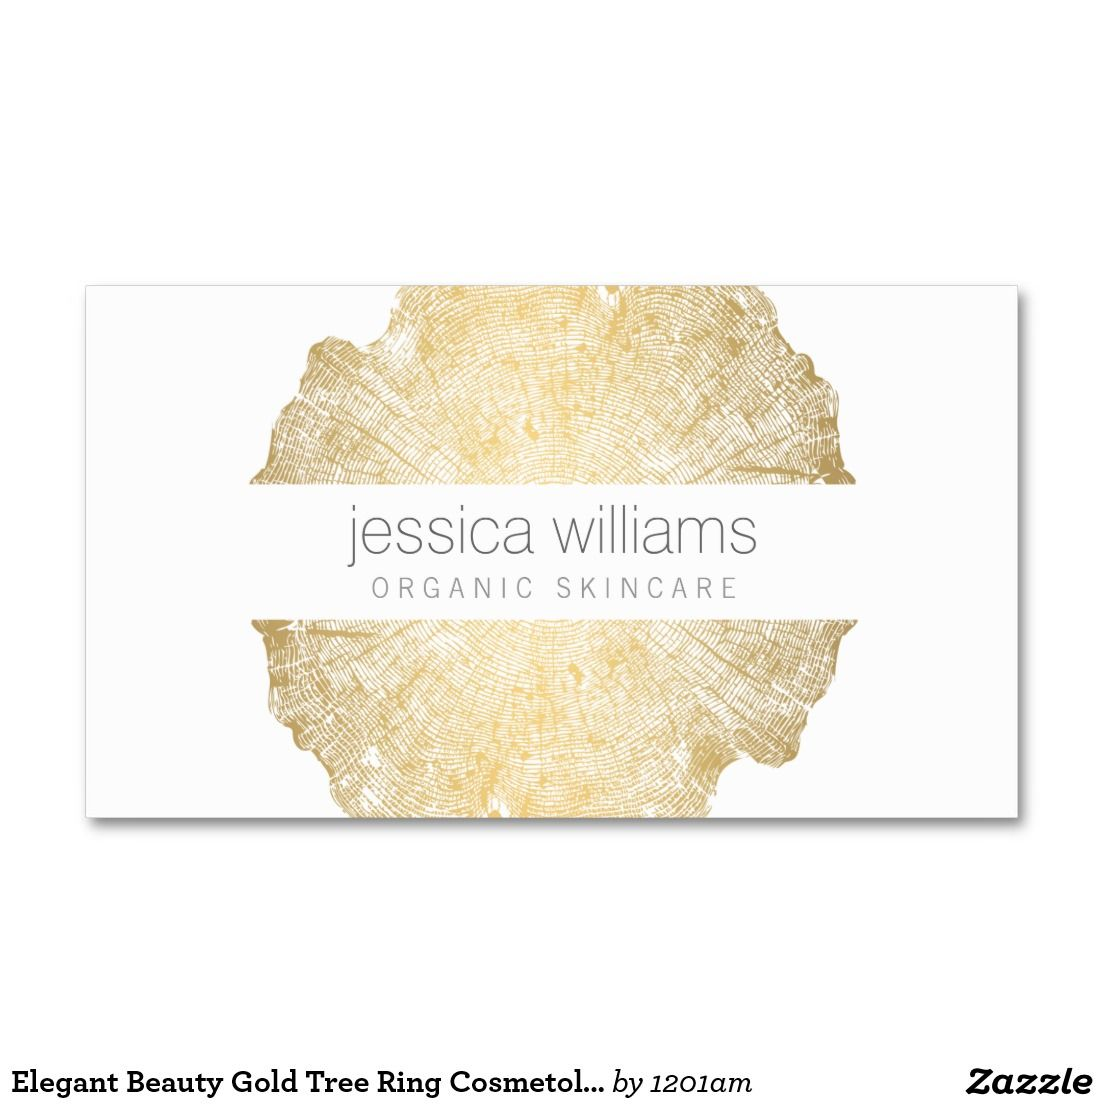 Luxe Wood Effect Art Cosmetologist Business Card | Brand design ...